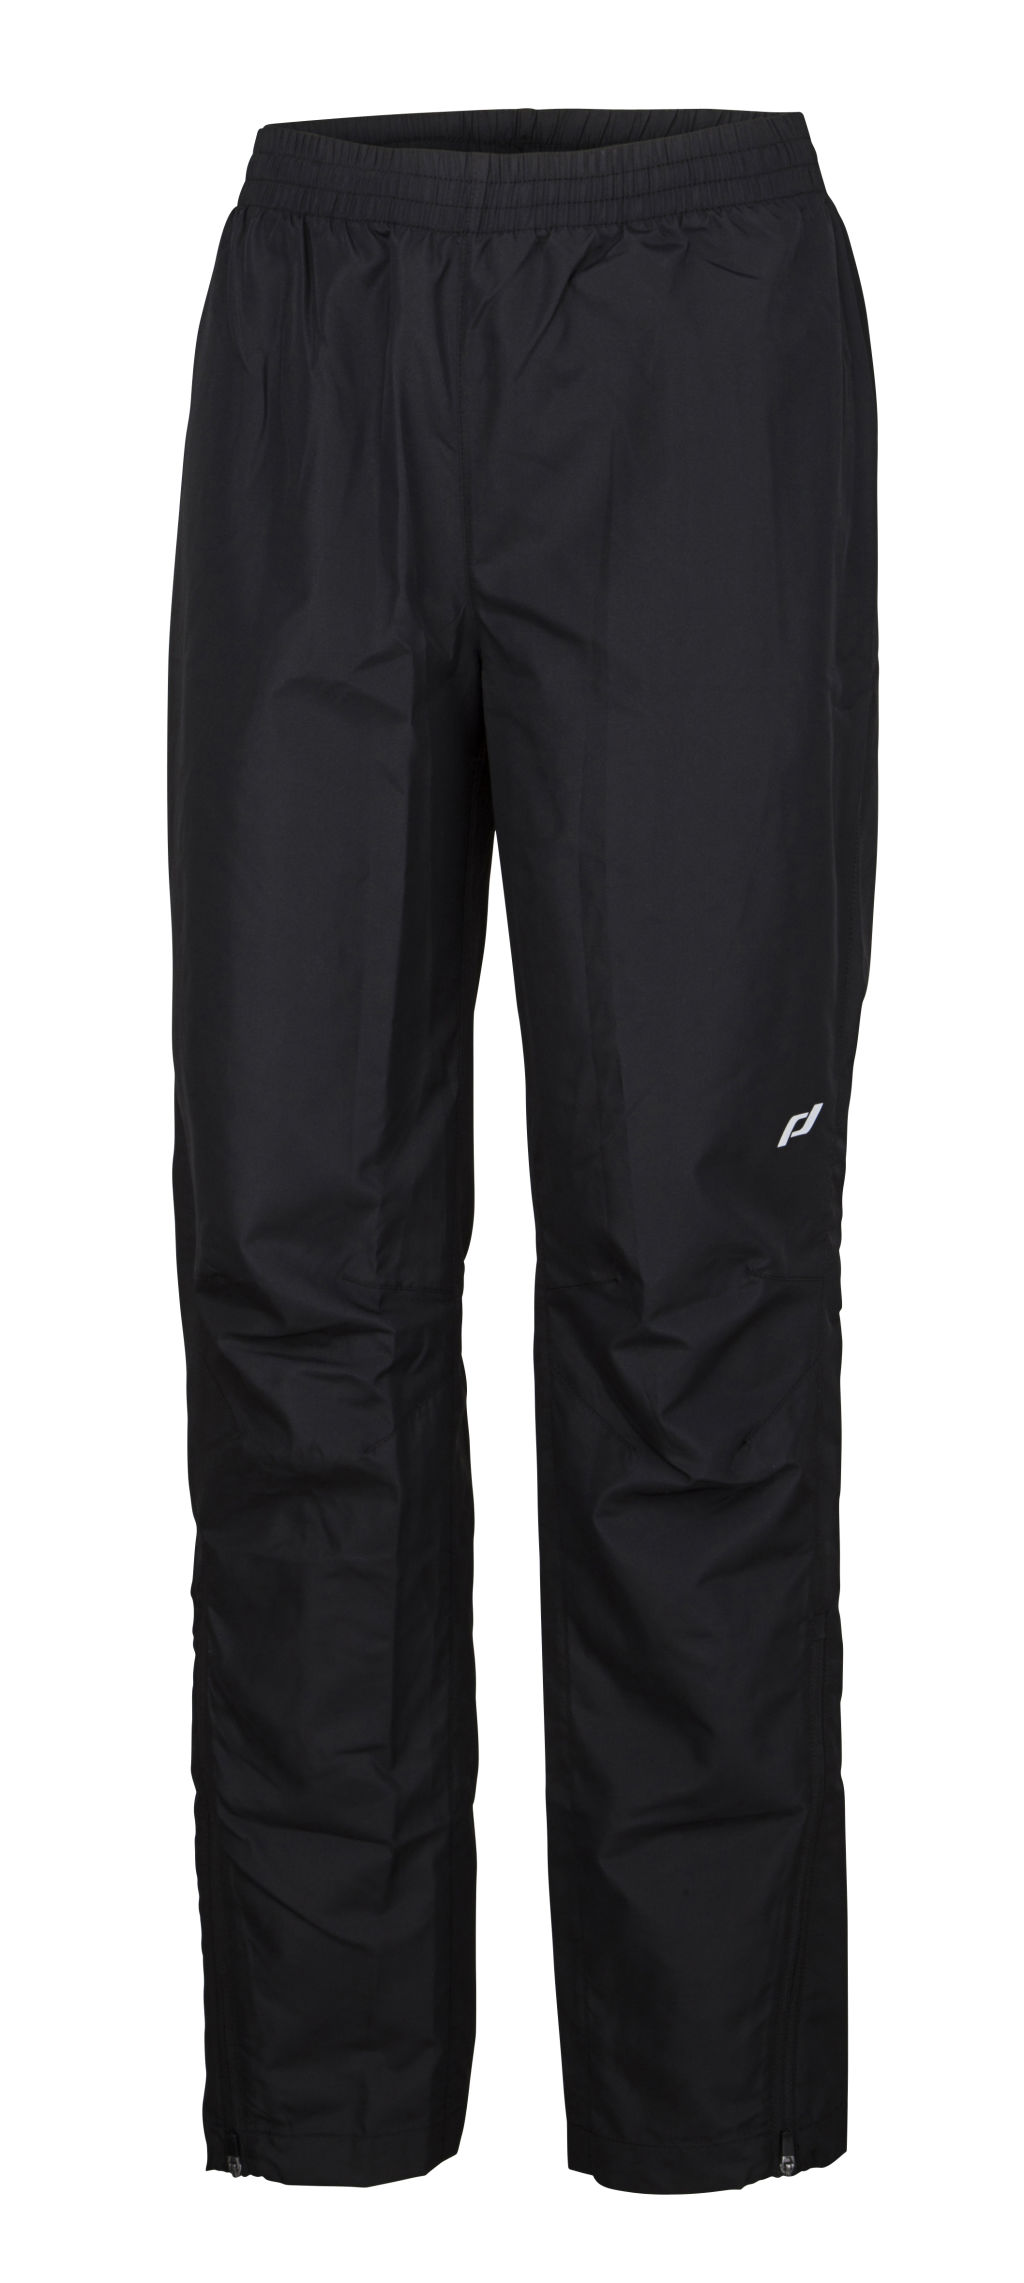 Pro Touch Racer Pants W